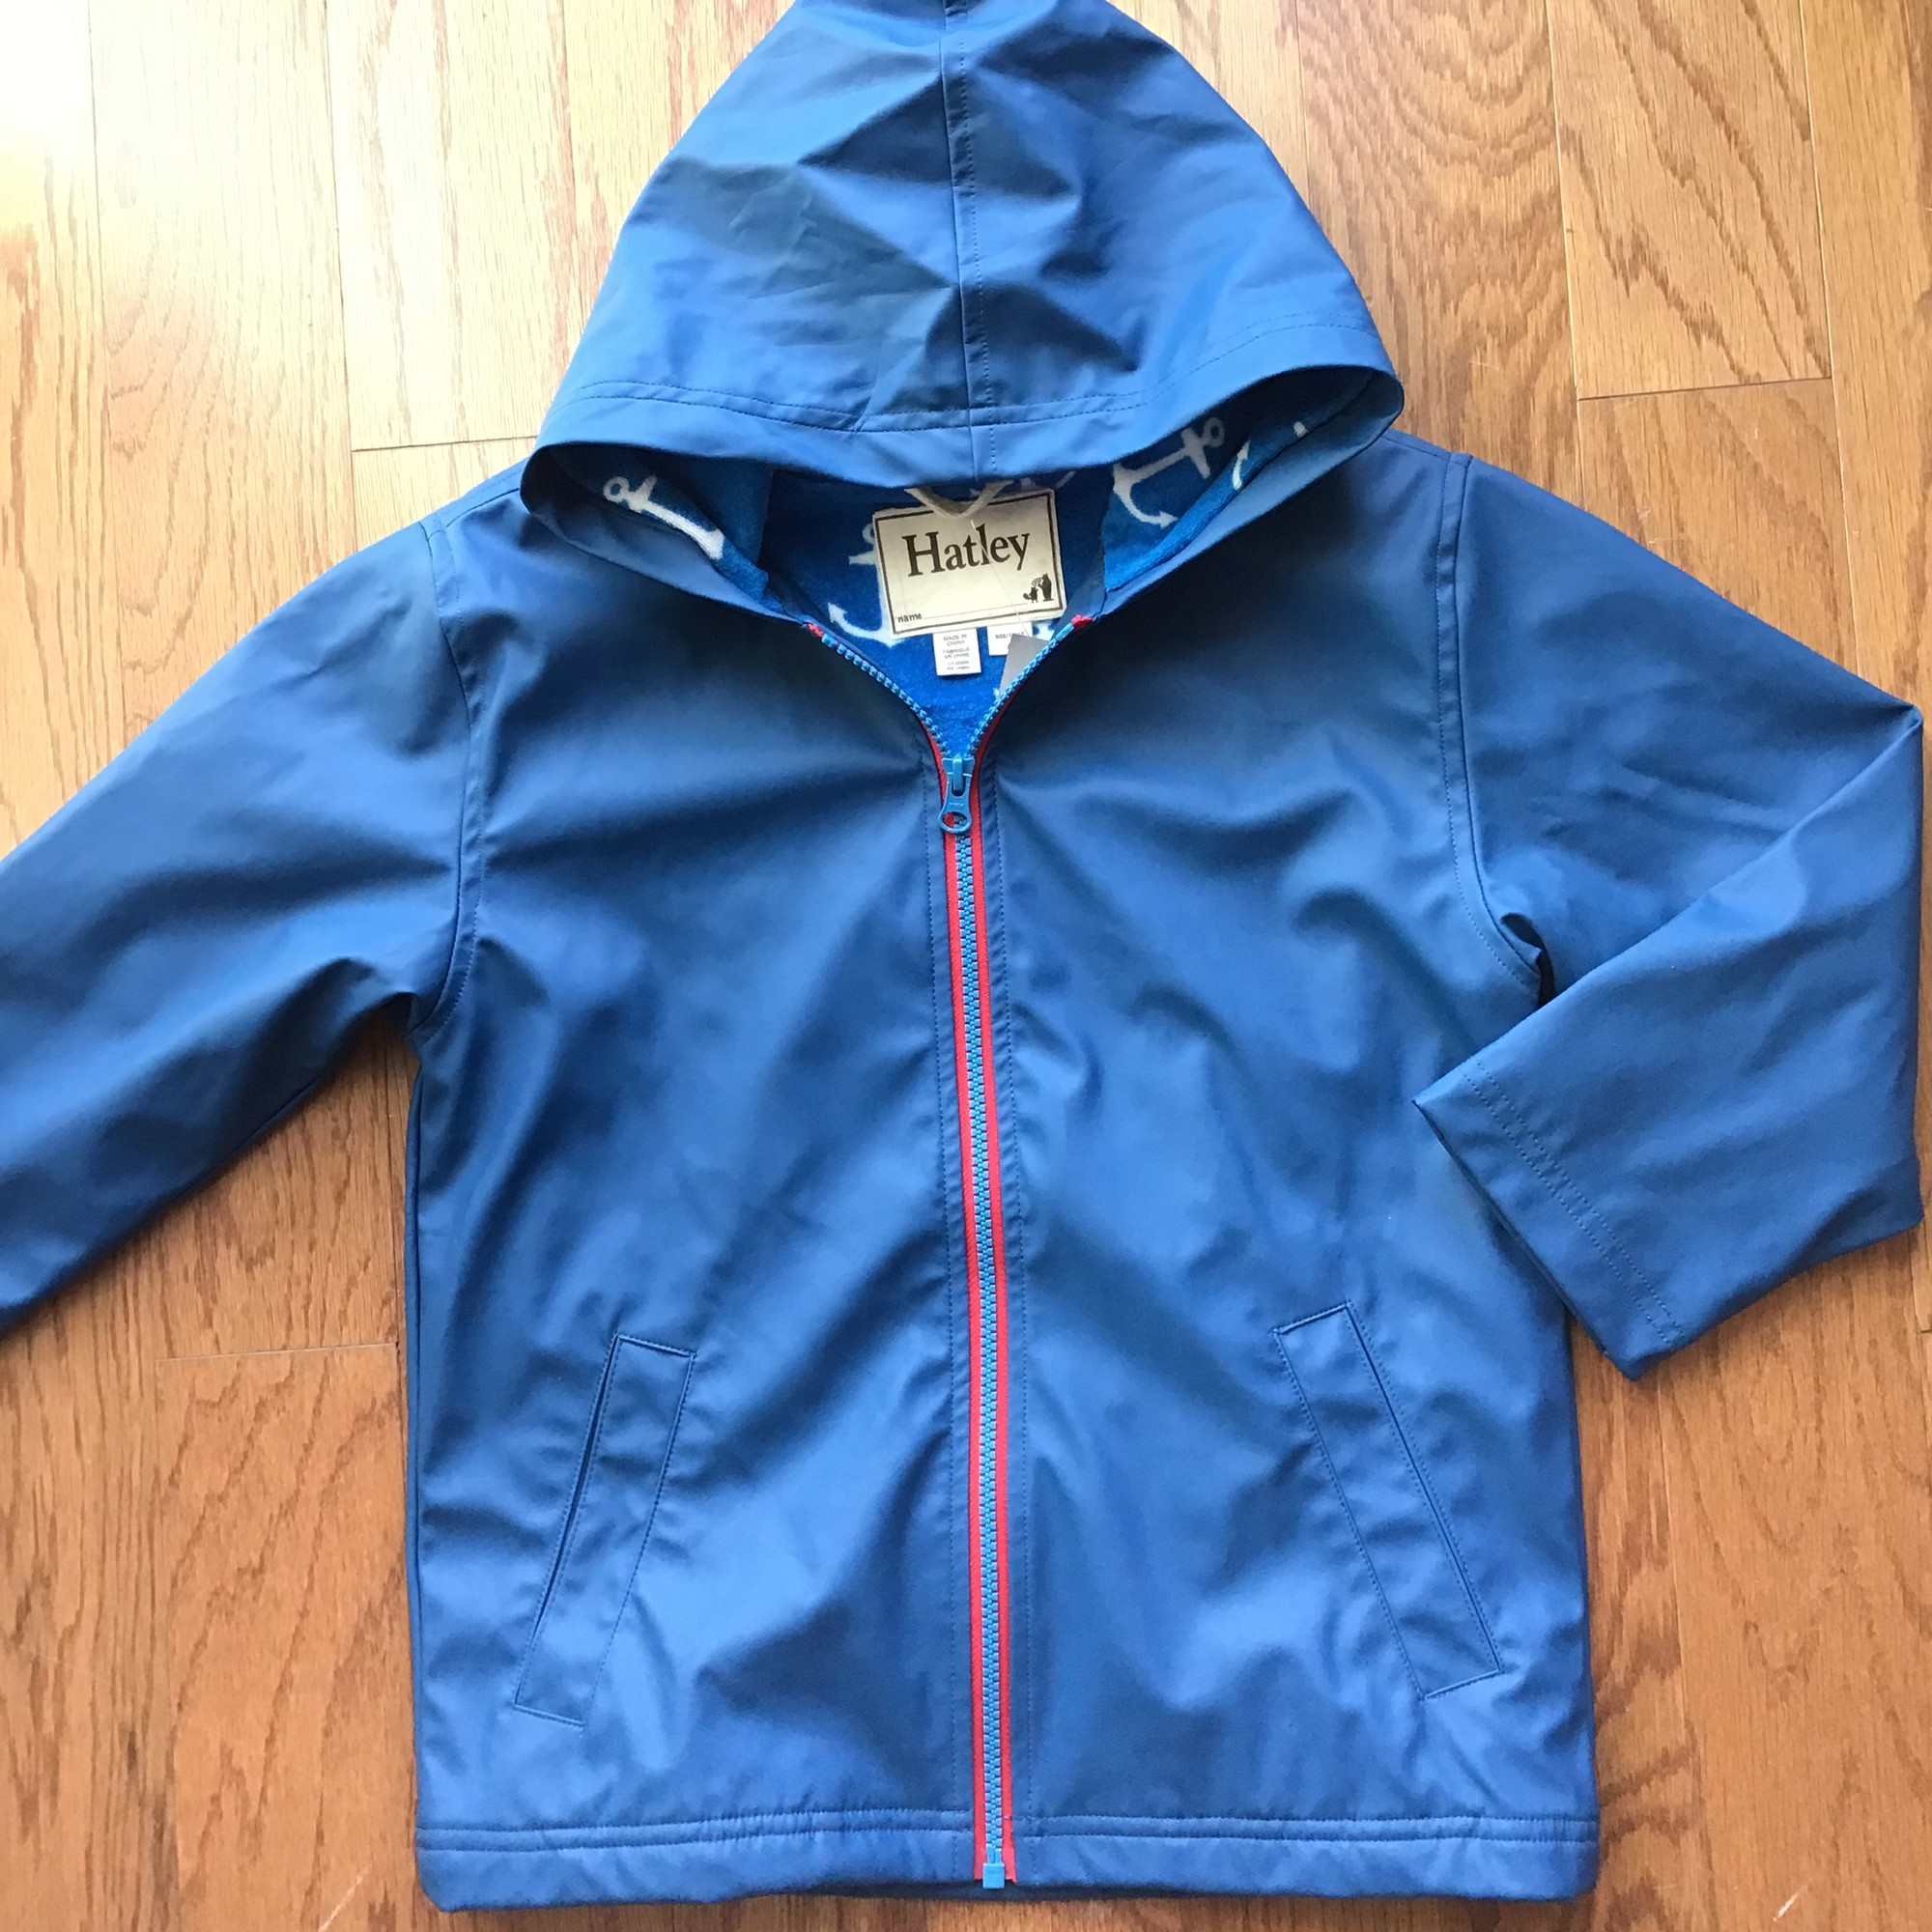 Hatley Rain Jacket, Blue, Size: 6<br /> <br /> <br /> ALL ONLINE SALES ARE FINAL. NO RETURNS OR EXCHANGES.